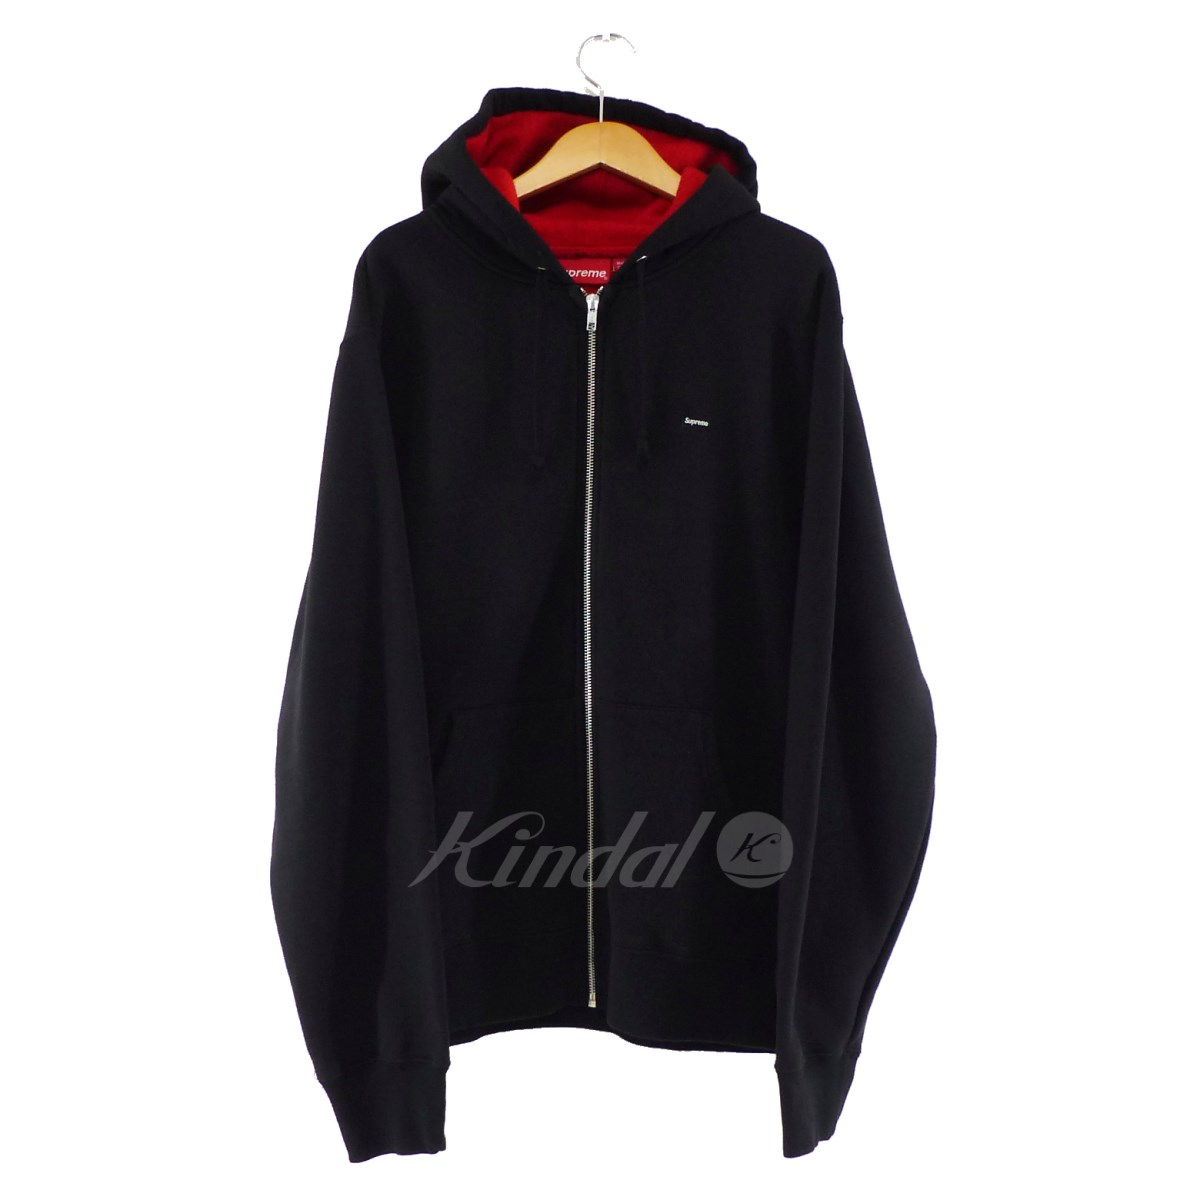 【中古】SUPREME 2018SS Contrast Zip Up Hooded Sweatshirt 【送料無料】 【154577】 【KIND1550】